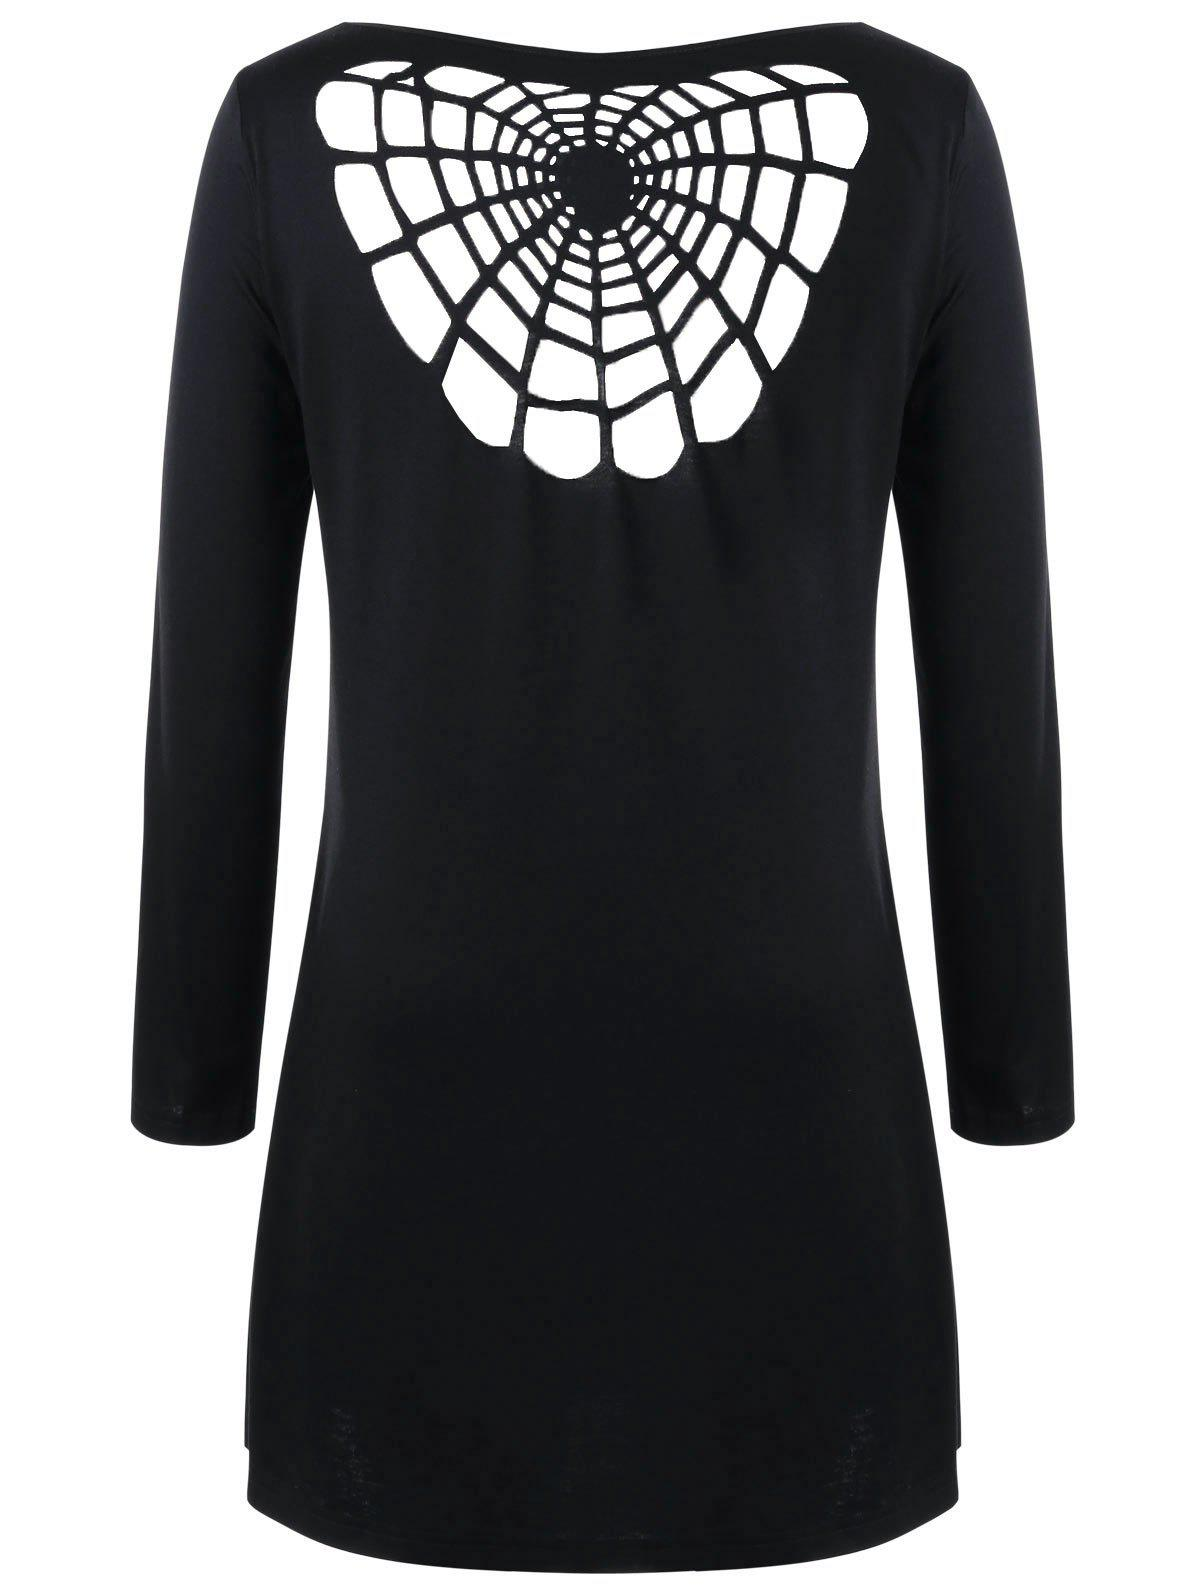 Halloween Plus Size Openwork Spider Tunic TopWOMEN<br><br>Size: 5XL; Color: BLACK; Material: Polyester,Spandex; Shirt Length: Long; Sleeve Length: Full; Collar: Boat Neck; Style: Novelty; Season: Fall,Spring; Pattern Type: Solid; Weight: 0.3000kg; Package Contents: 1 x T-shirt;